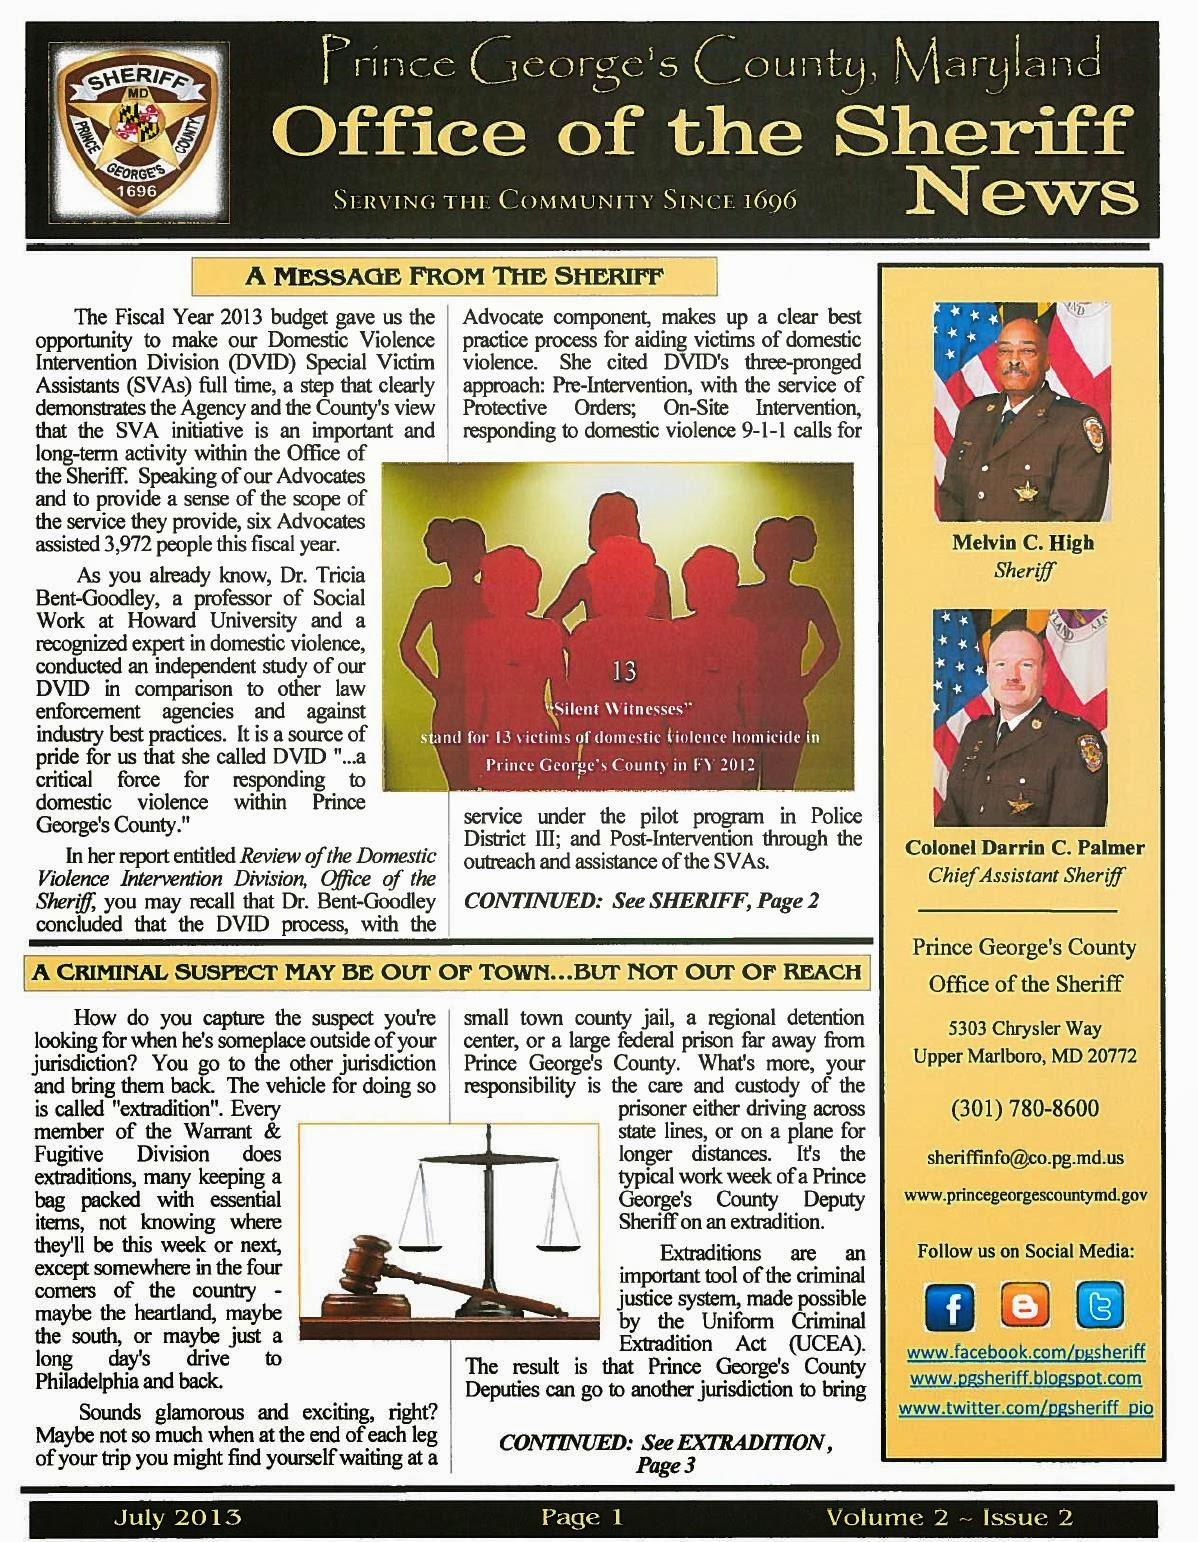 Sheriff's Summer Newsletter- July 2013